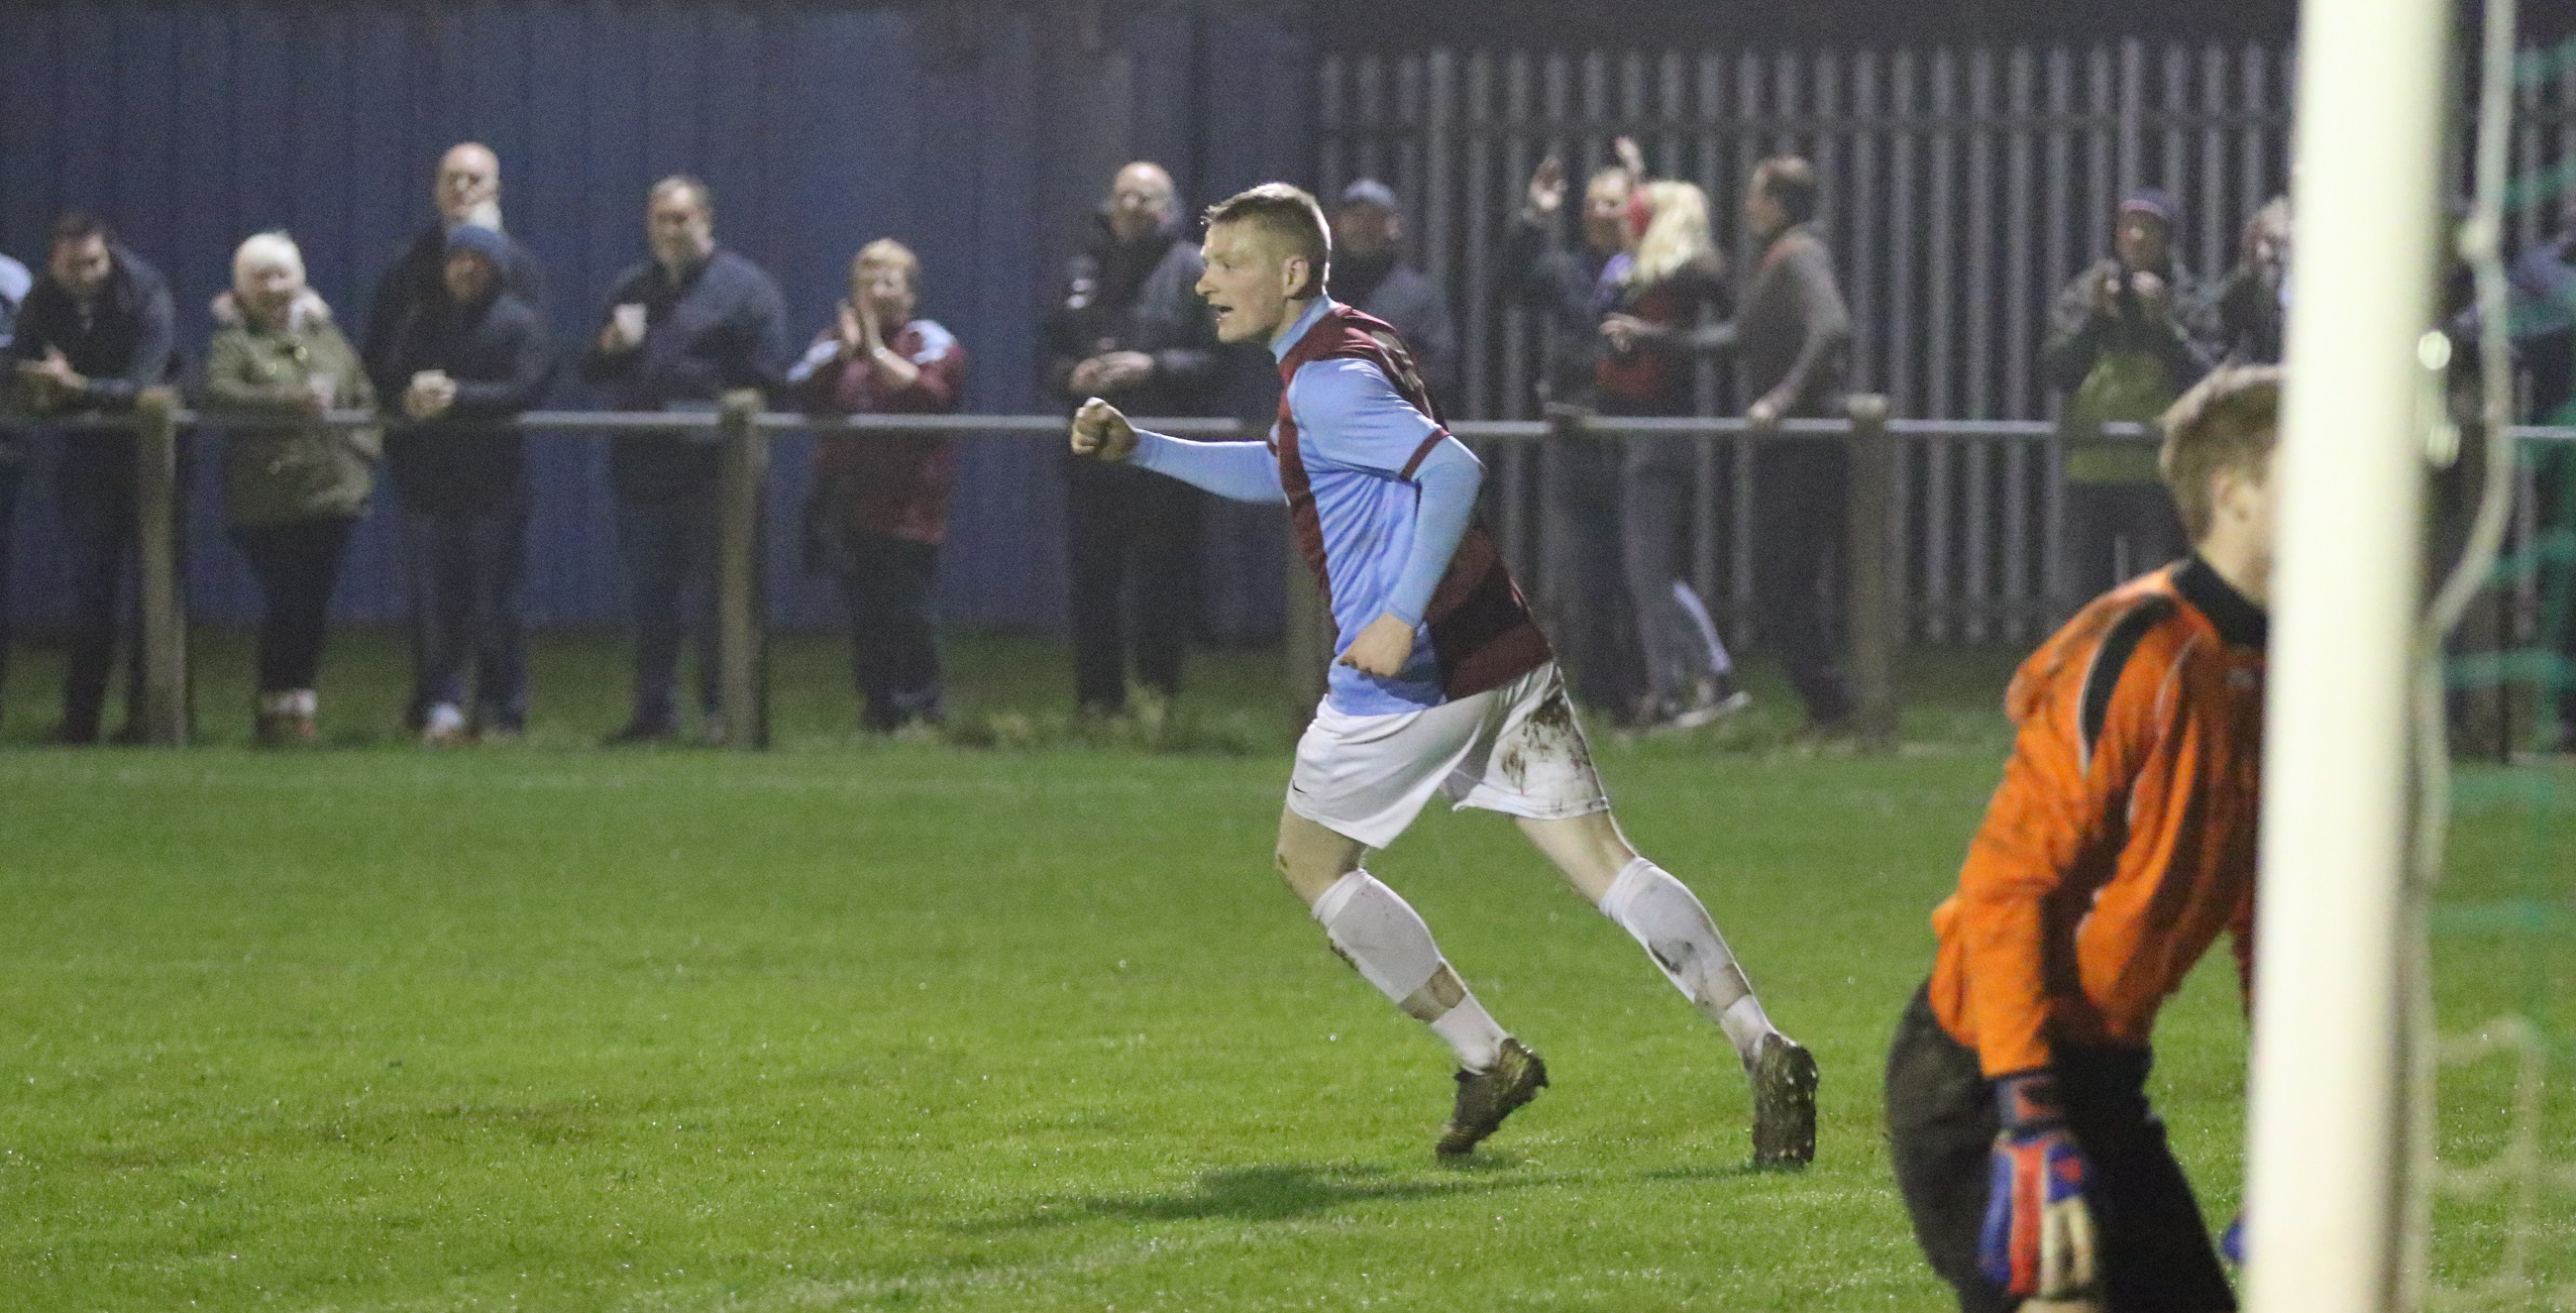 Birtley Town vs South Shields